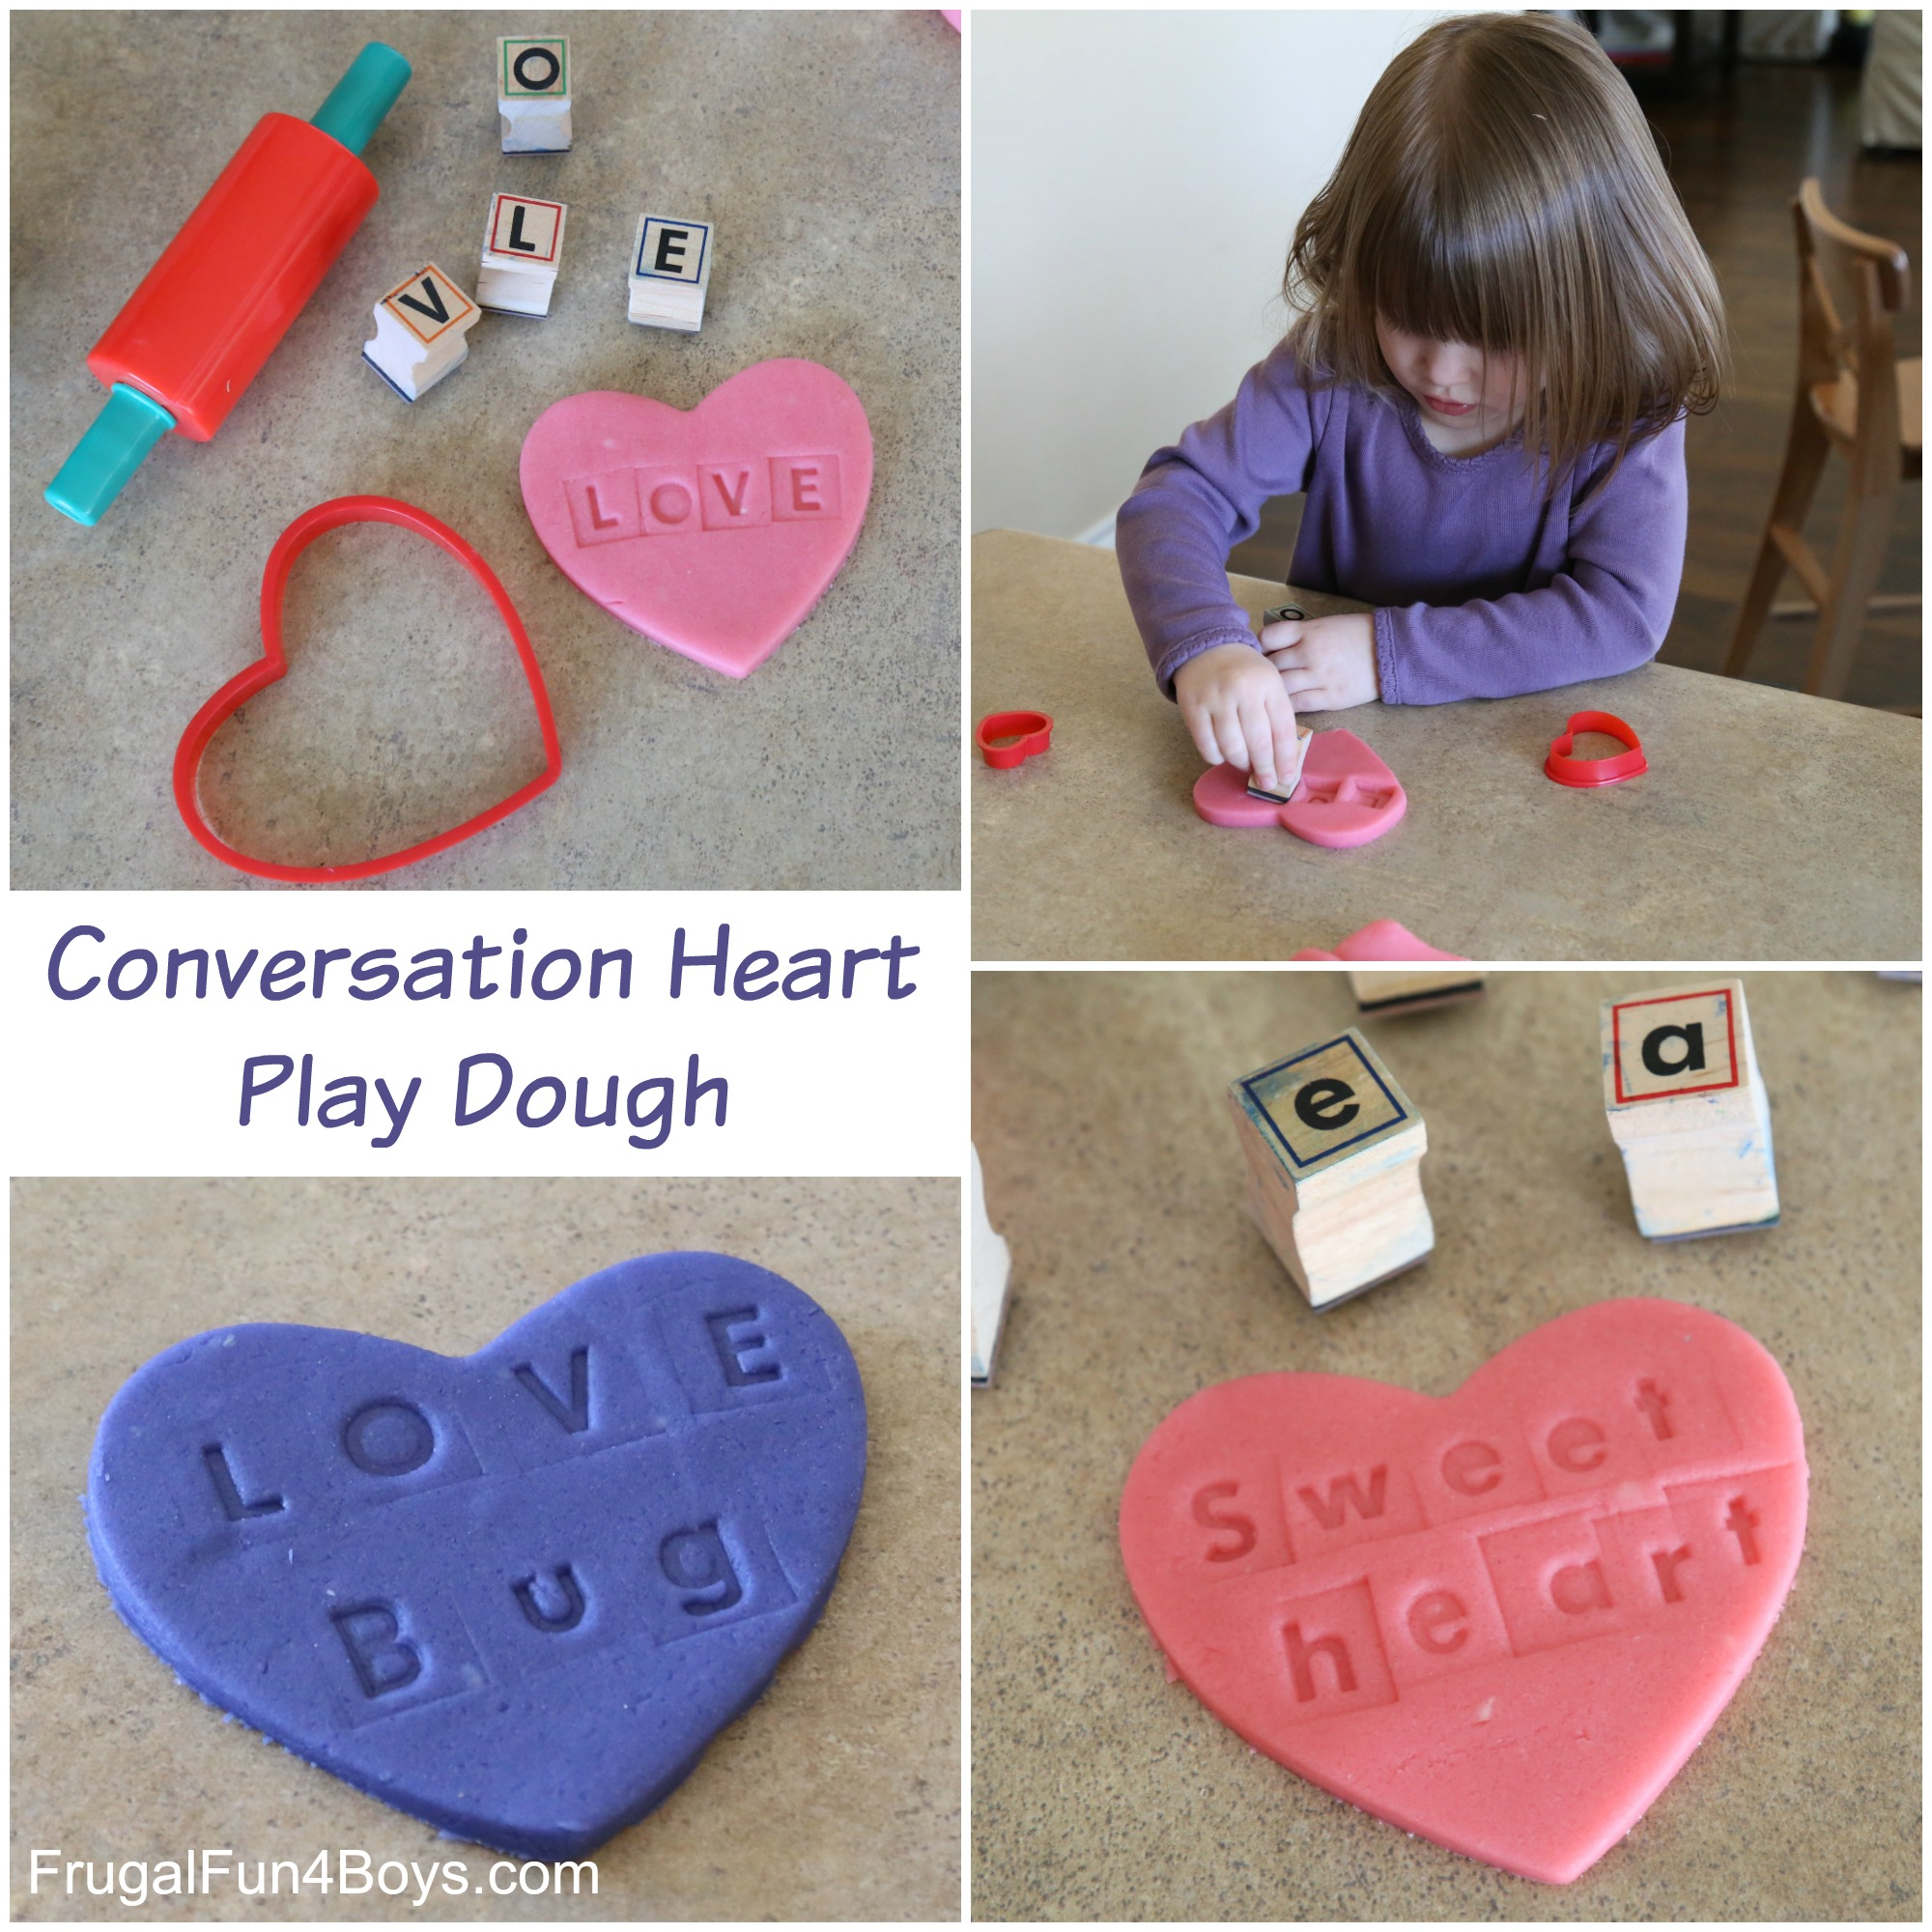 Conversation Hearts Play Dough - Valentine's Day Activity for Kids